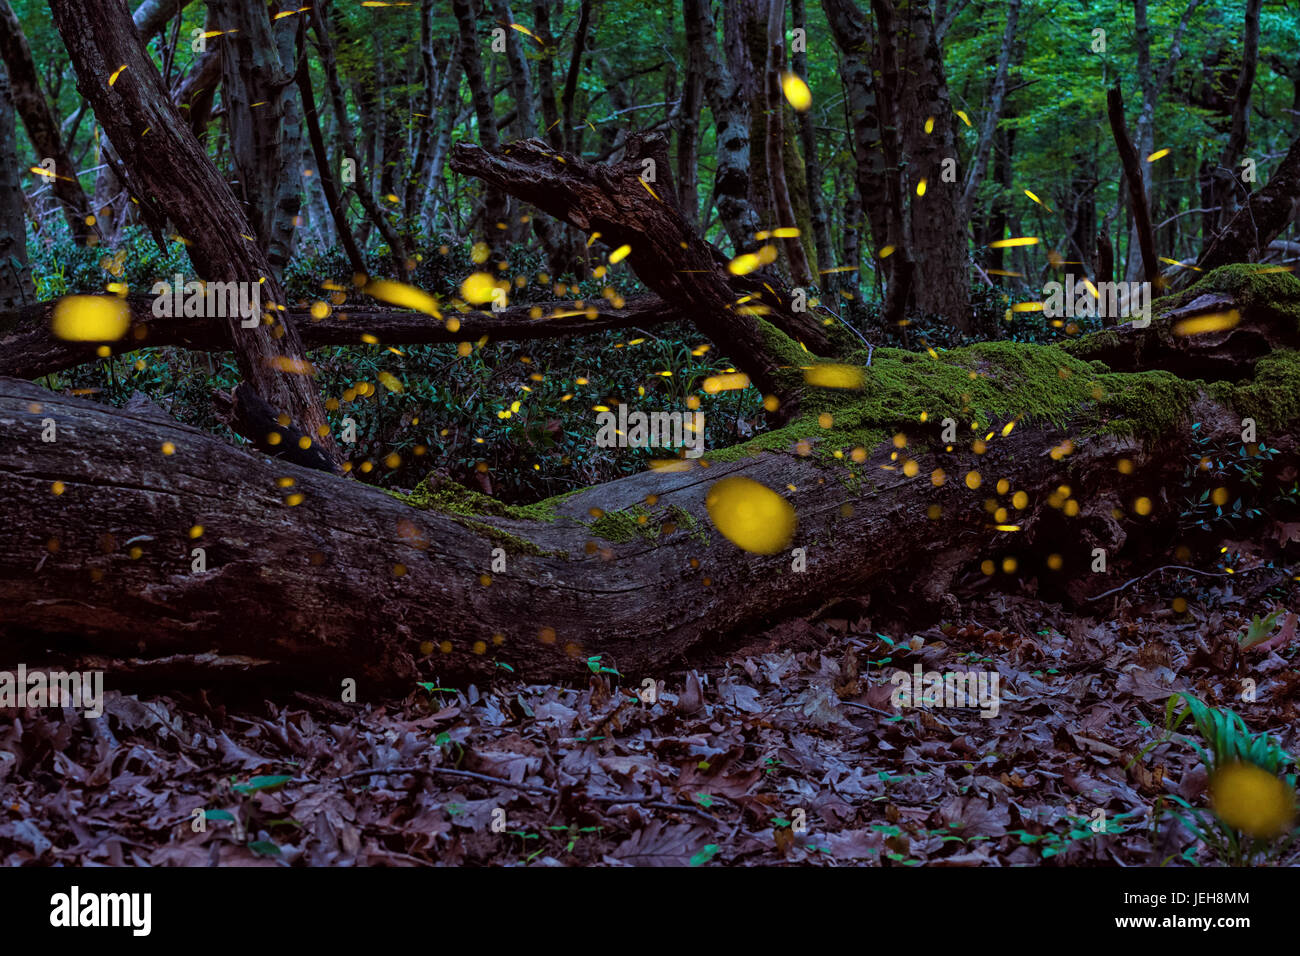 Magical Fireflies in the summer at the enchanted fairy forest - Stock Image